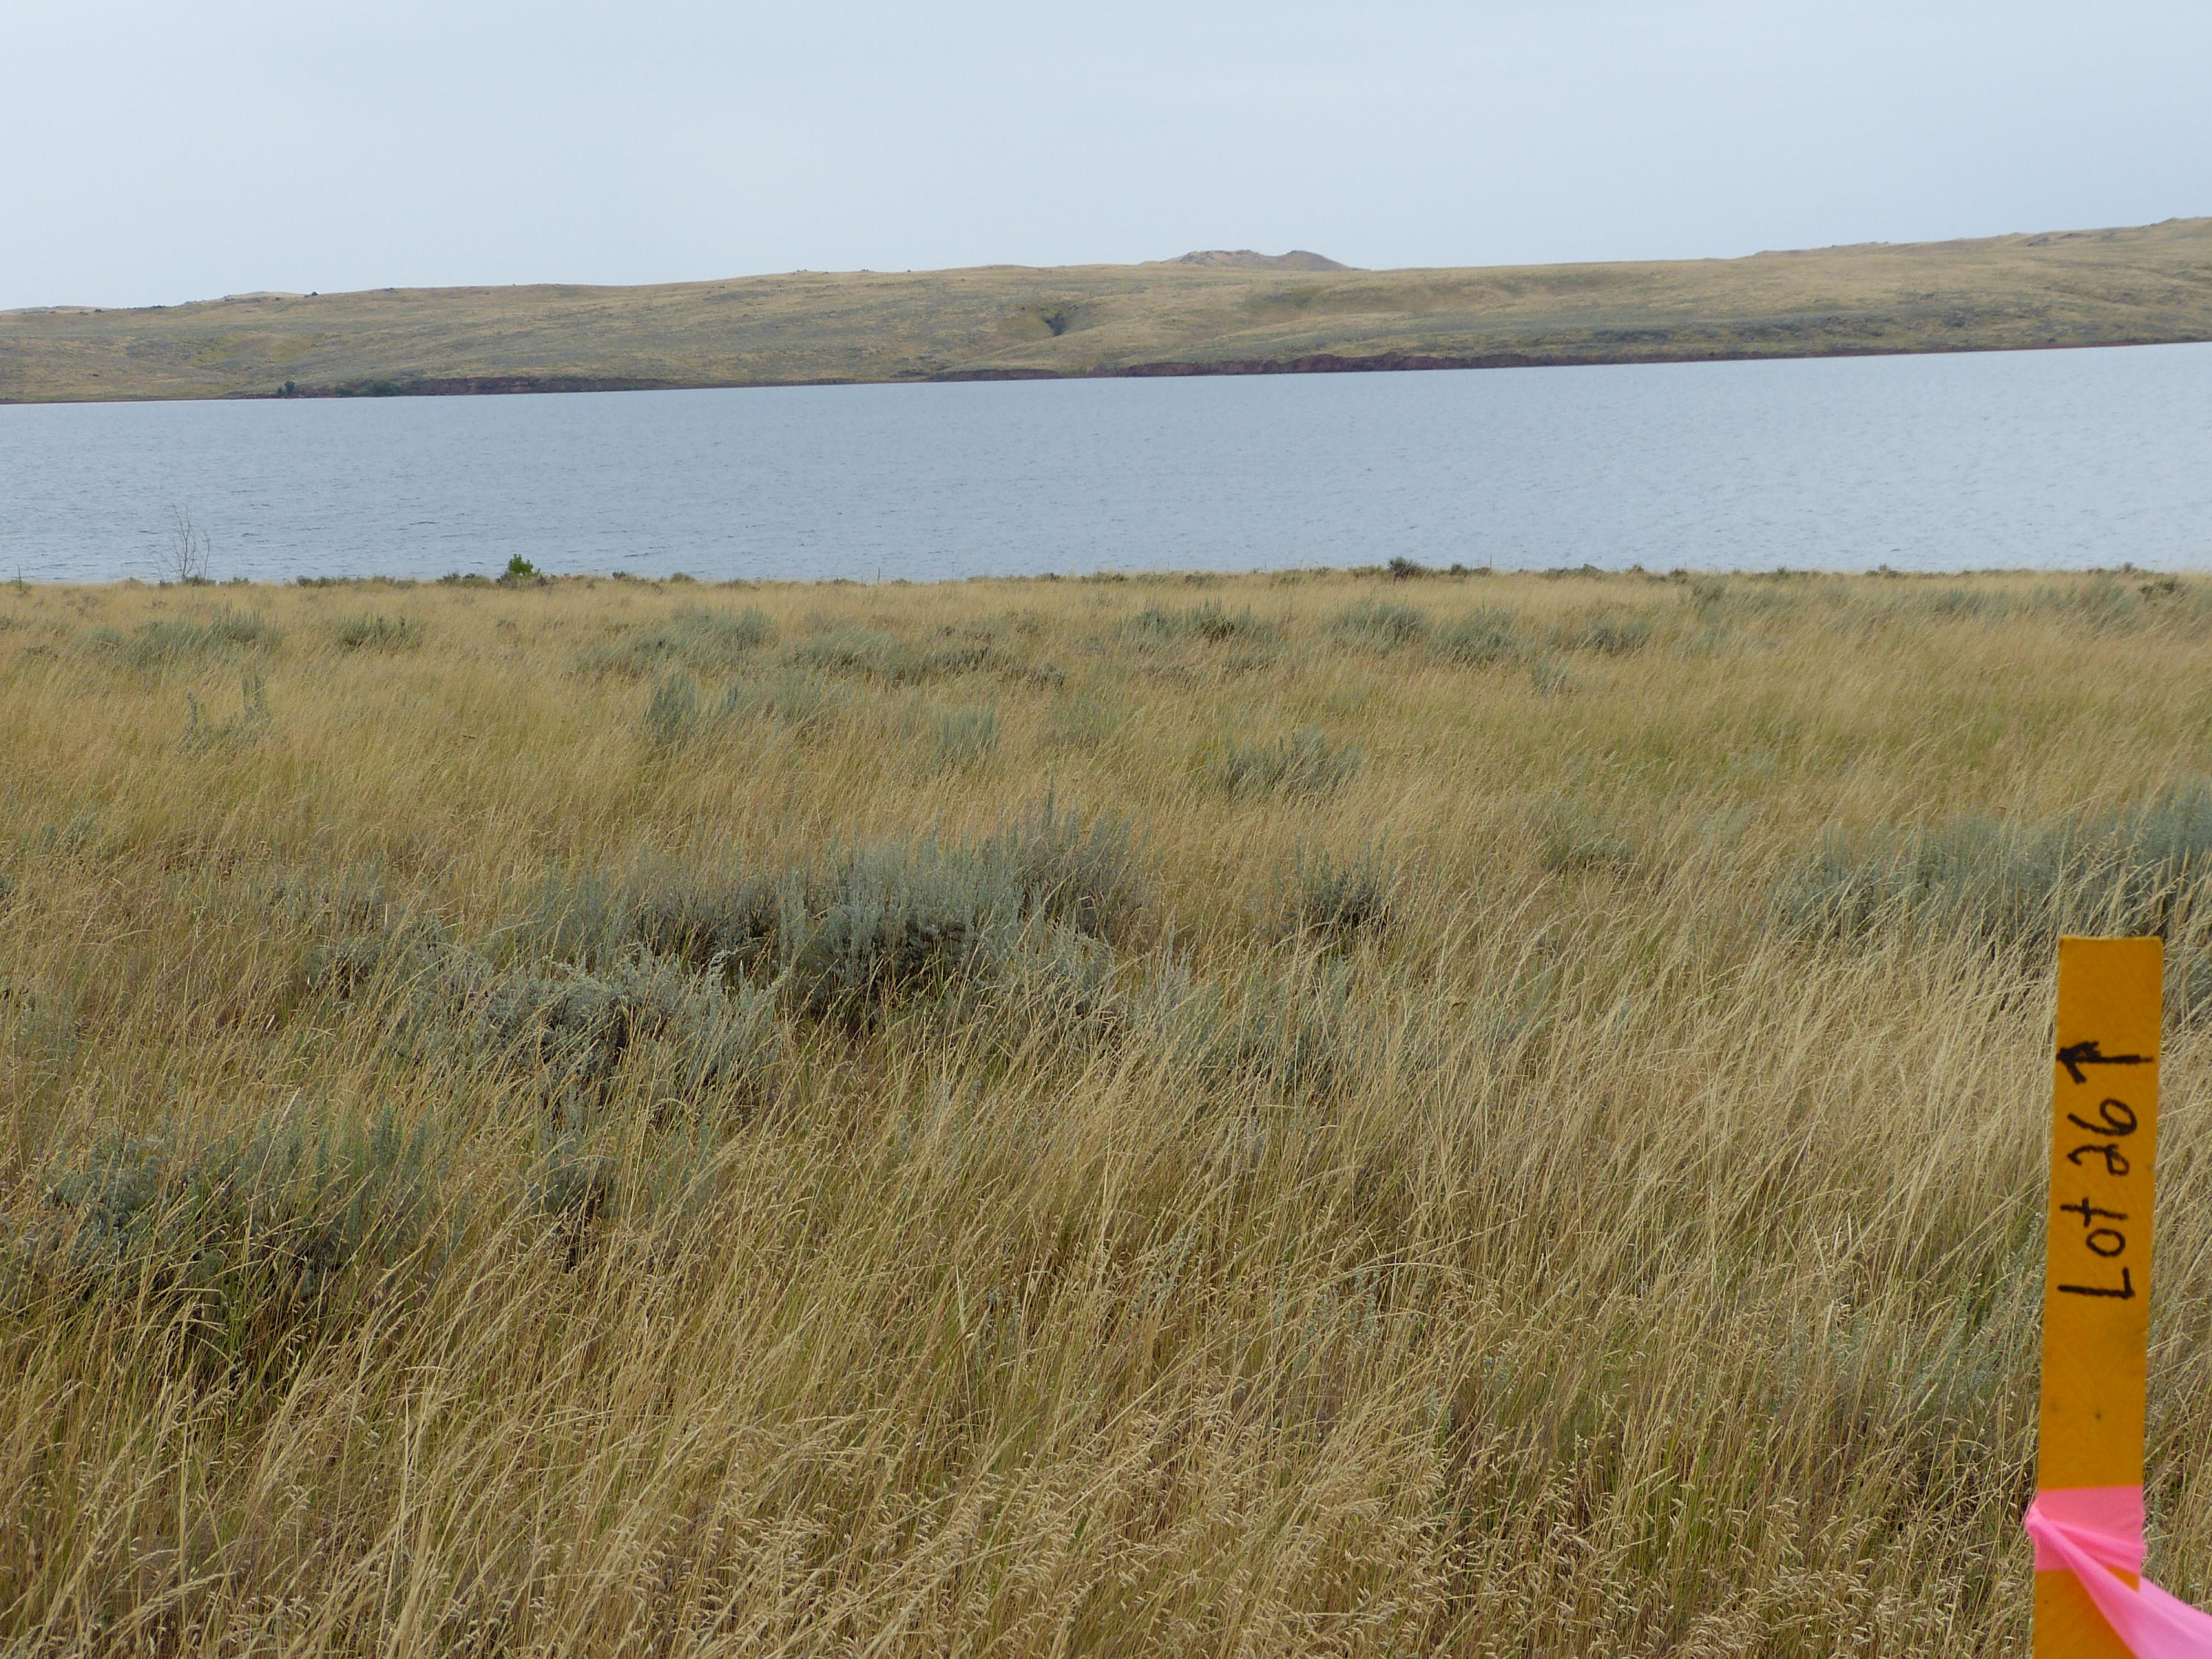 Lot 26 Promontory Way, Buffalo, Wyoming 82832, ,Building Site,For Sale,Promontory,19-529